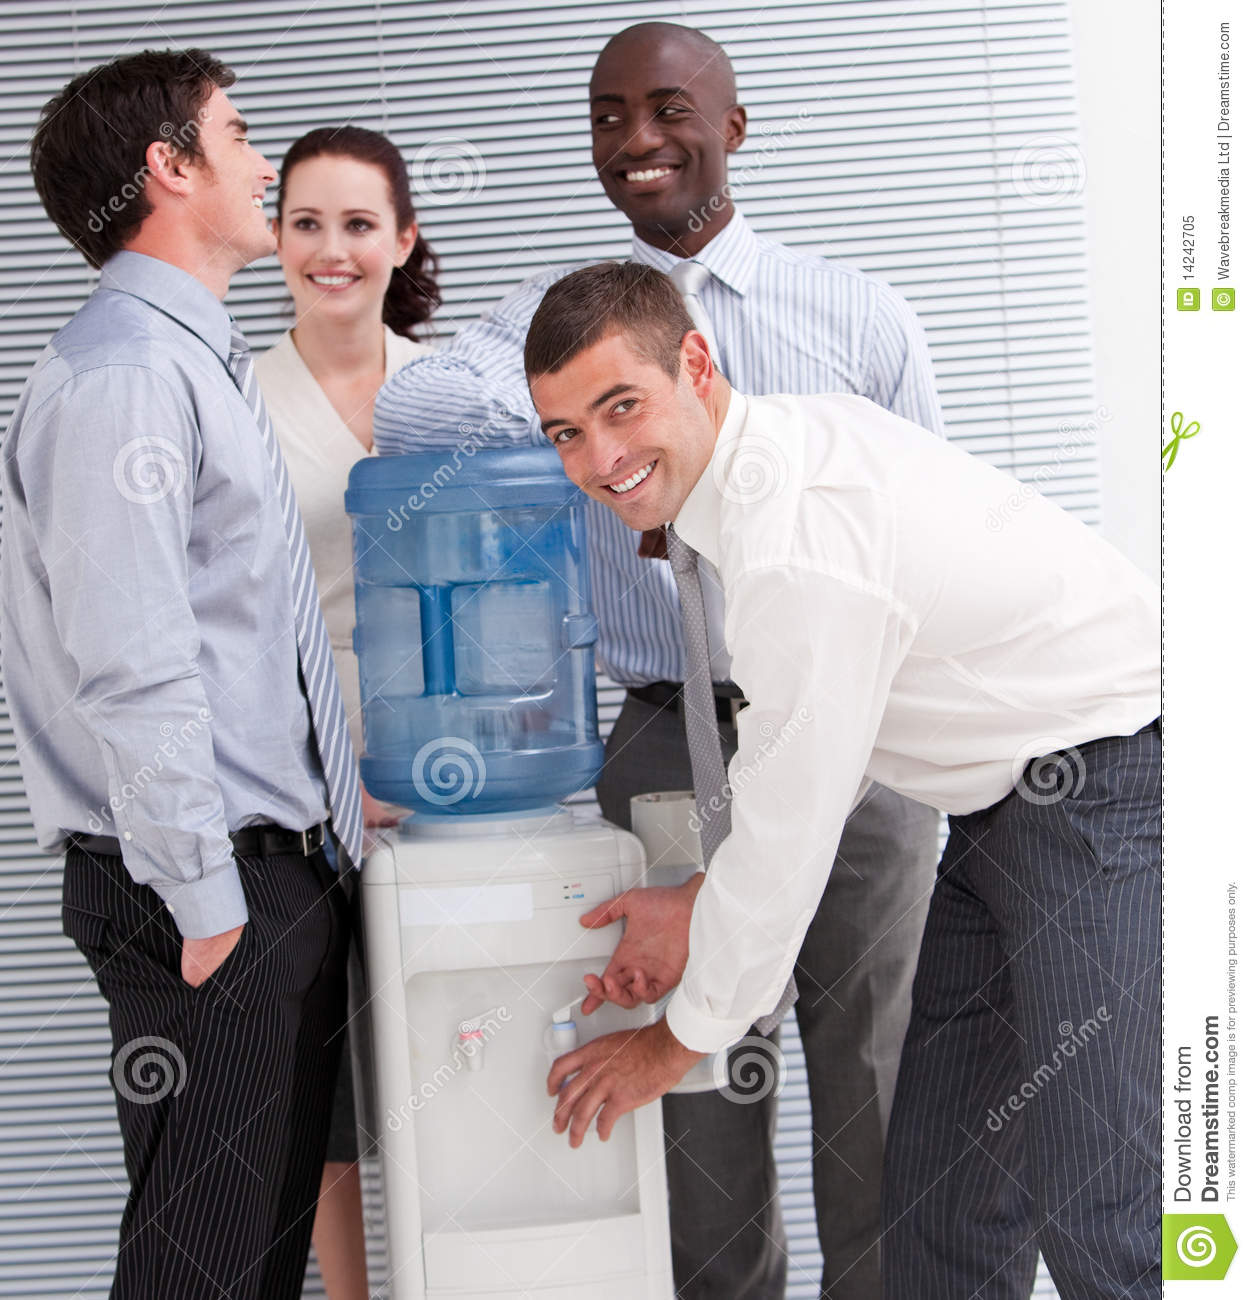 Business People Interacting At A Water Cooler Stock Image - Image ...